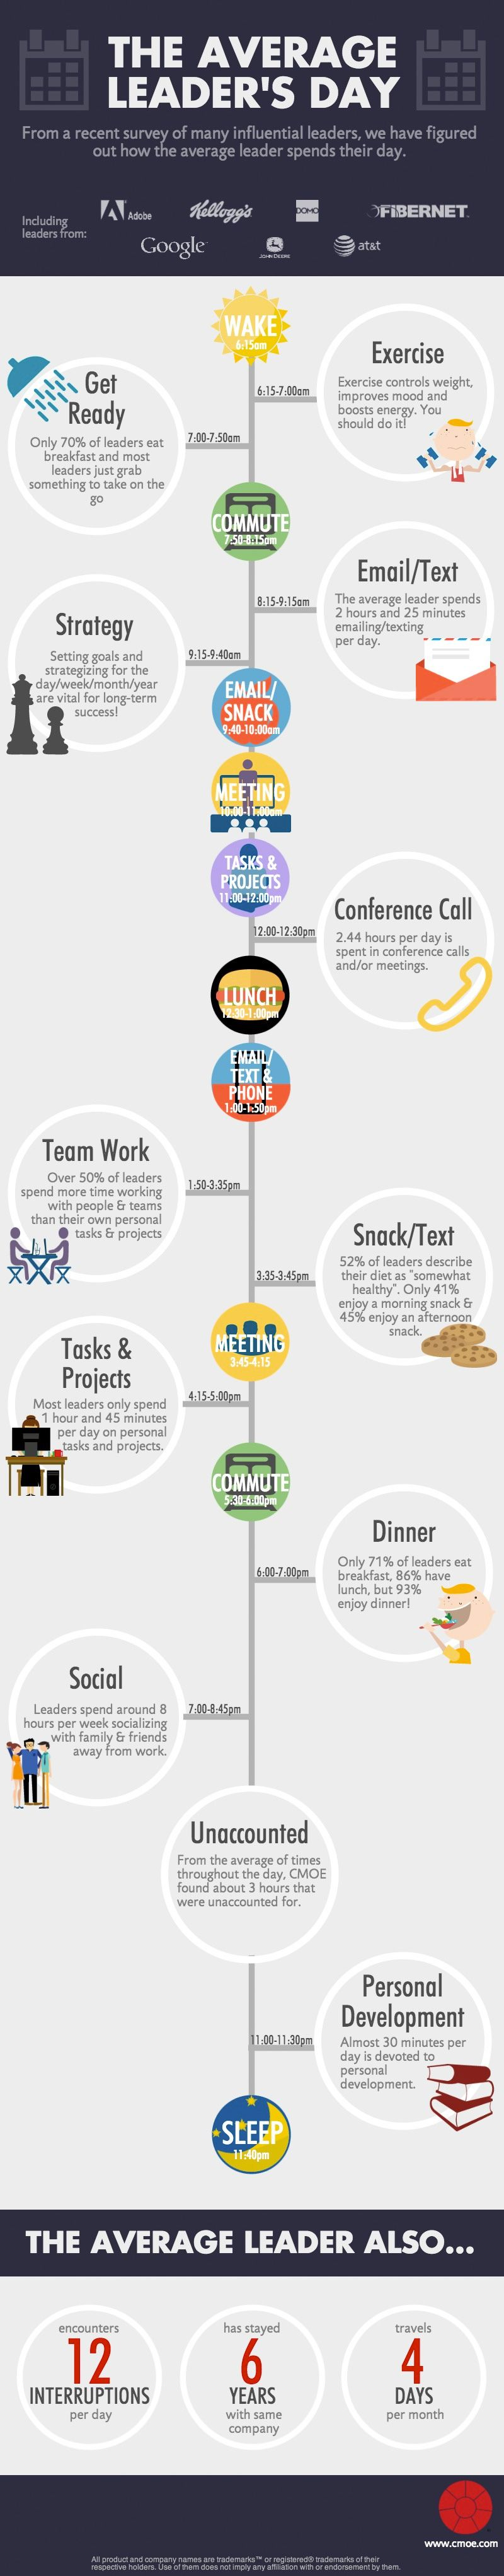 Purchase Order Template Open Office Simple How Fortune 500 Leaders Spend Every Minute Of The Day Infographic .